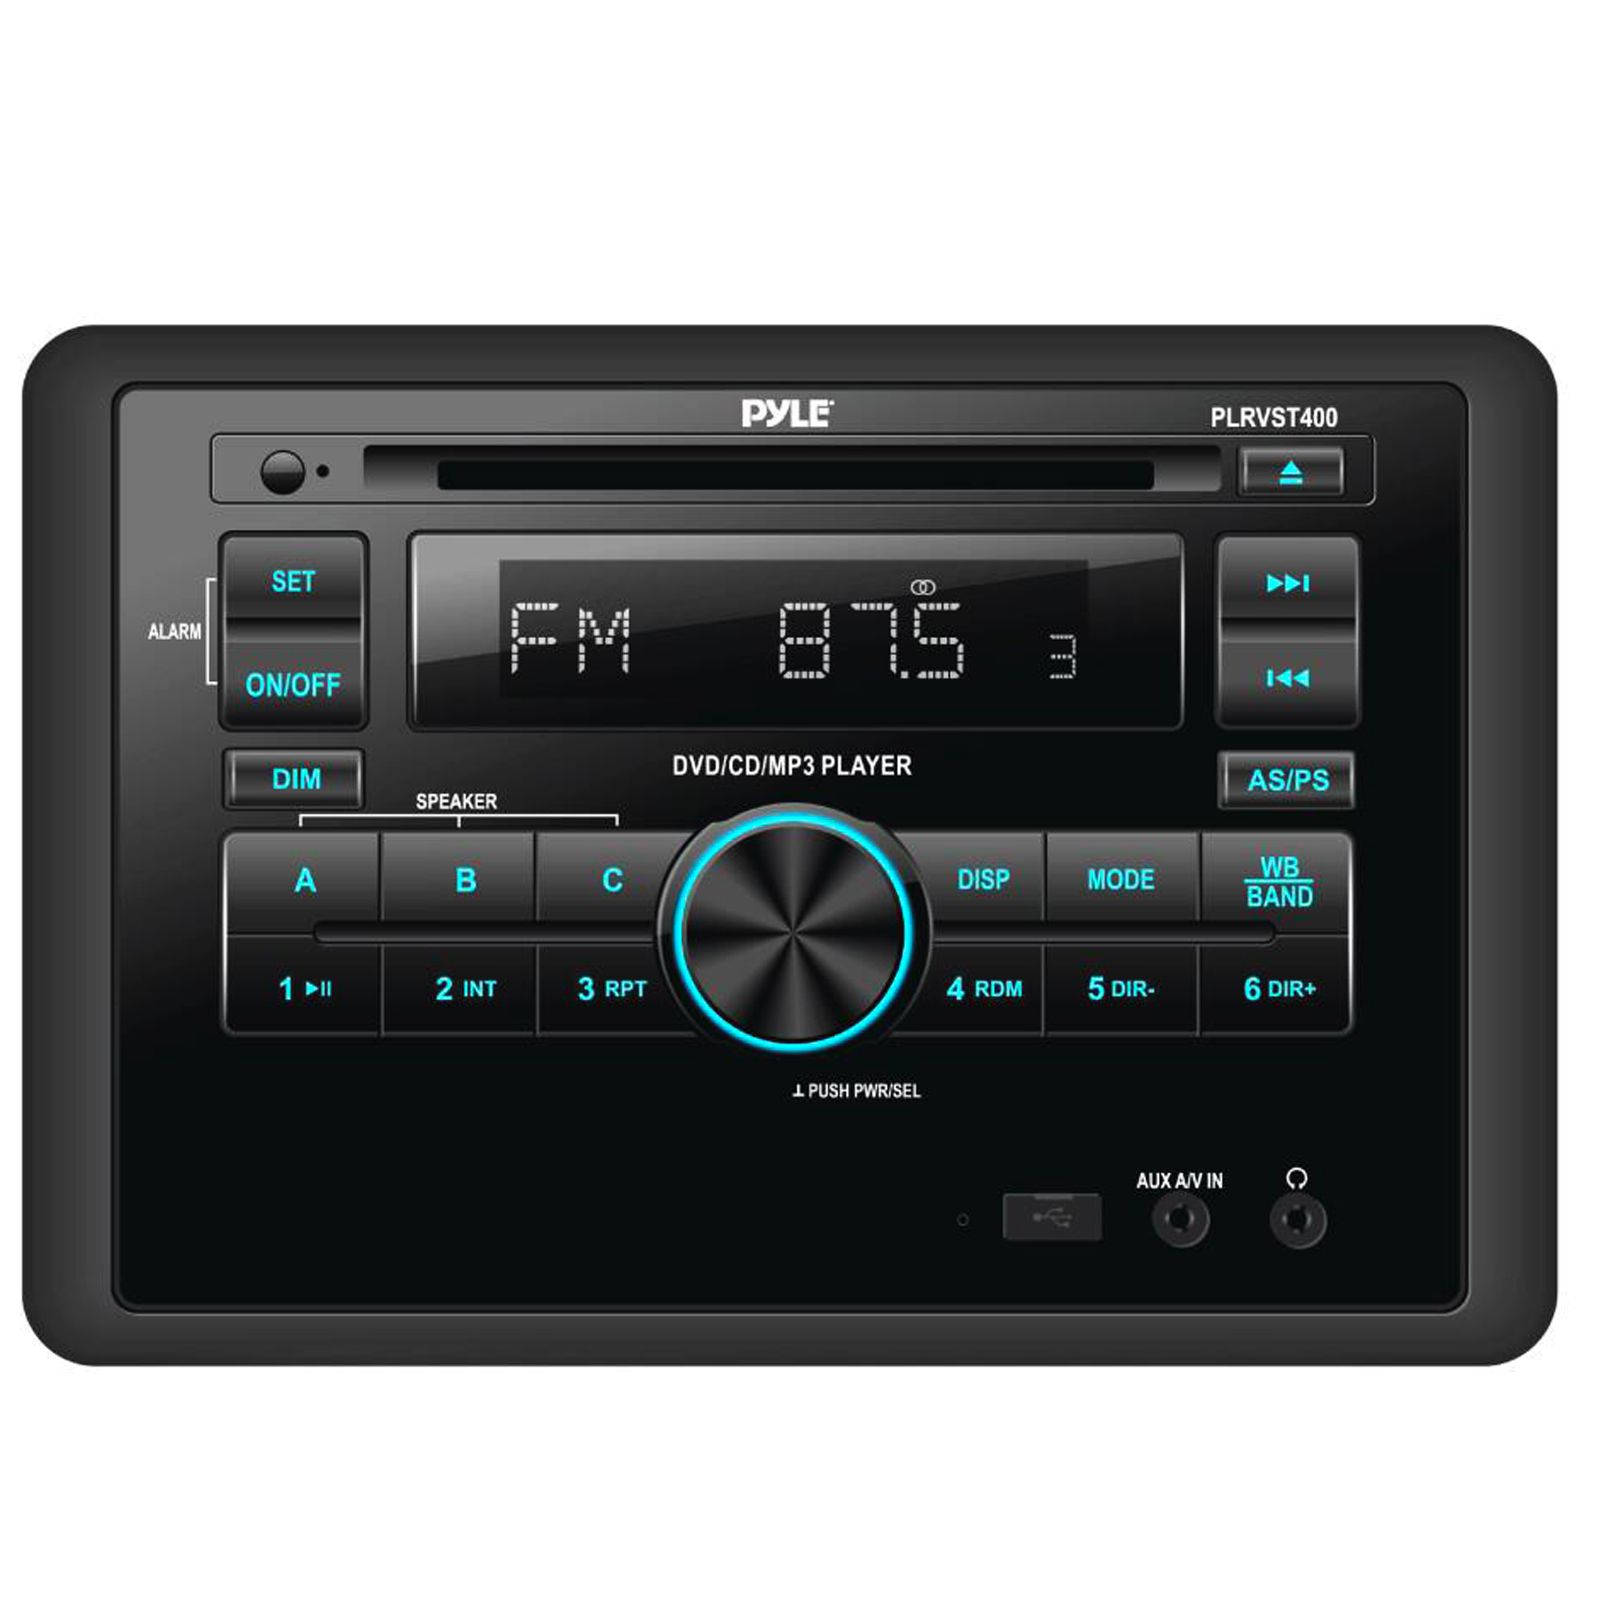 hight resolution of pyle double din in dash car stereo head unit wall mount rv audio video receiver system with radio bt cd dvd player mp3 usb includes remote control